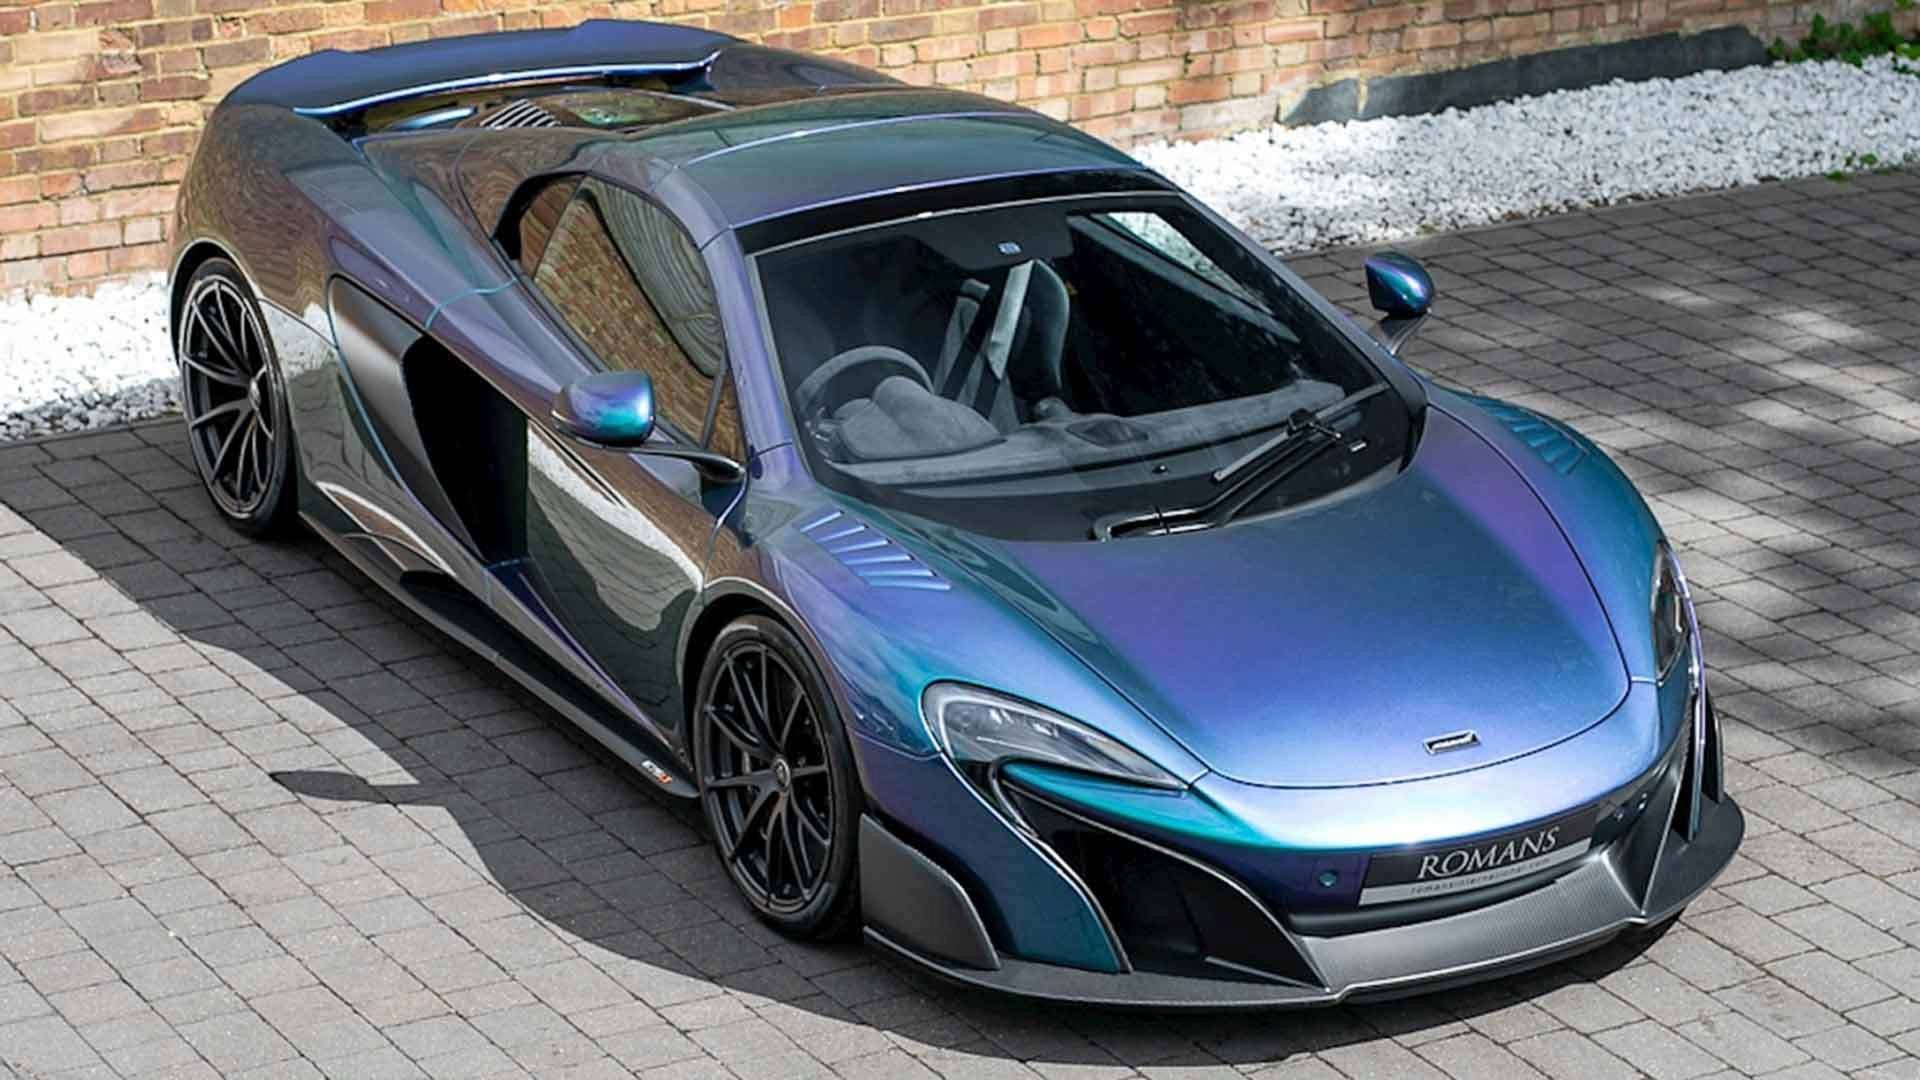 mclaren-675lt-spider-in-chameleon-paint (9)